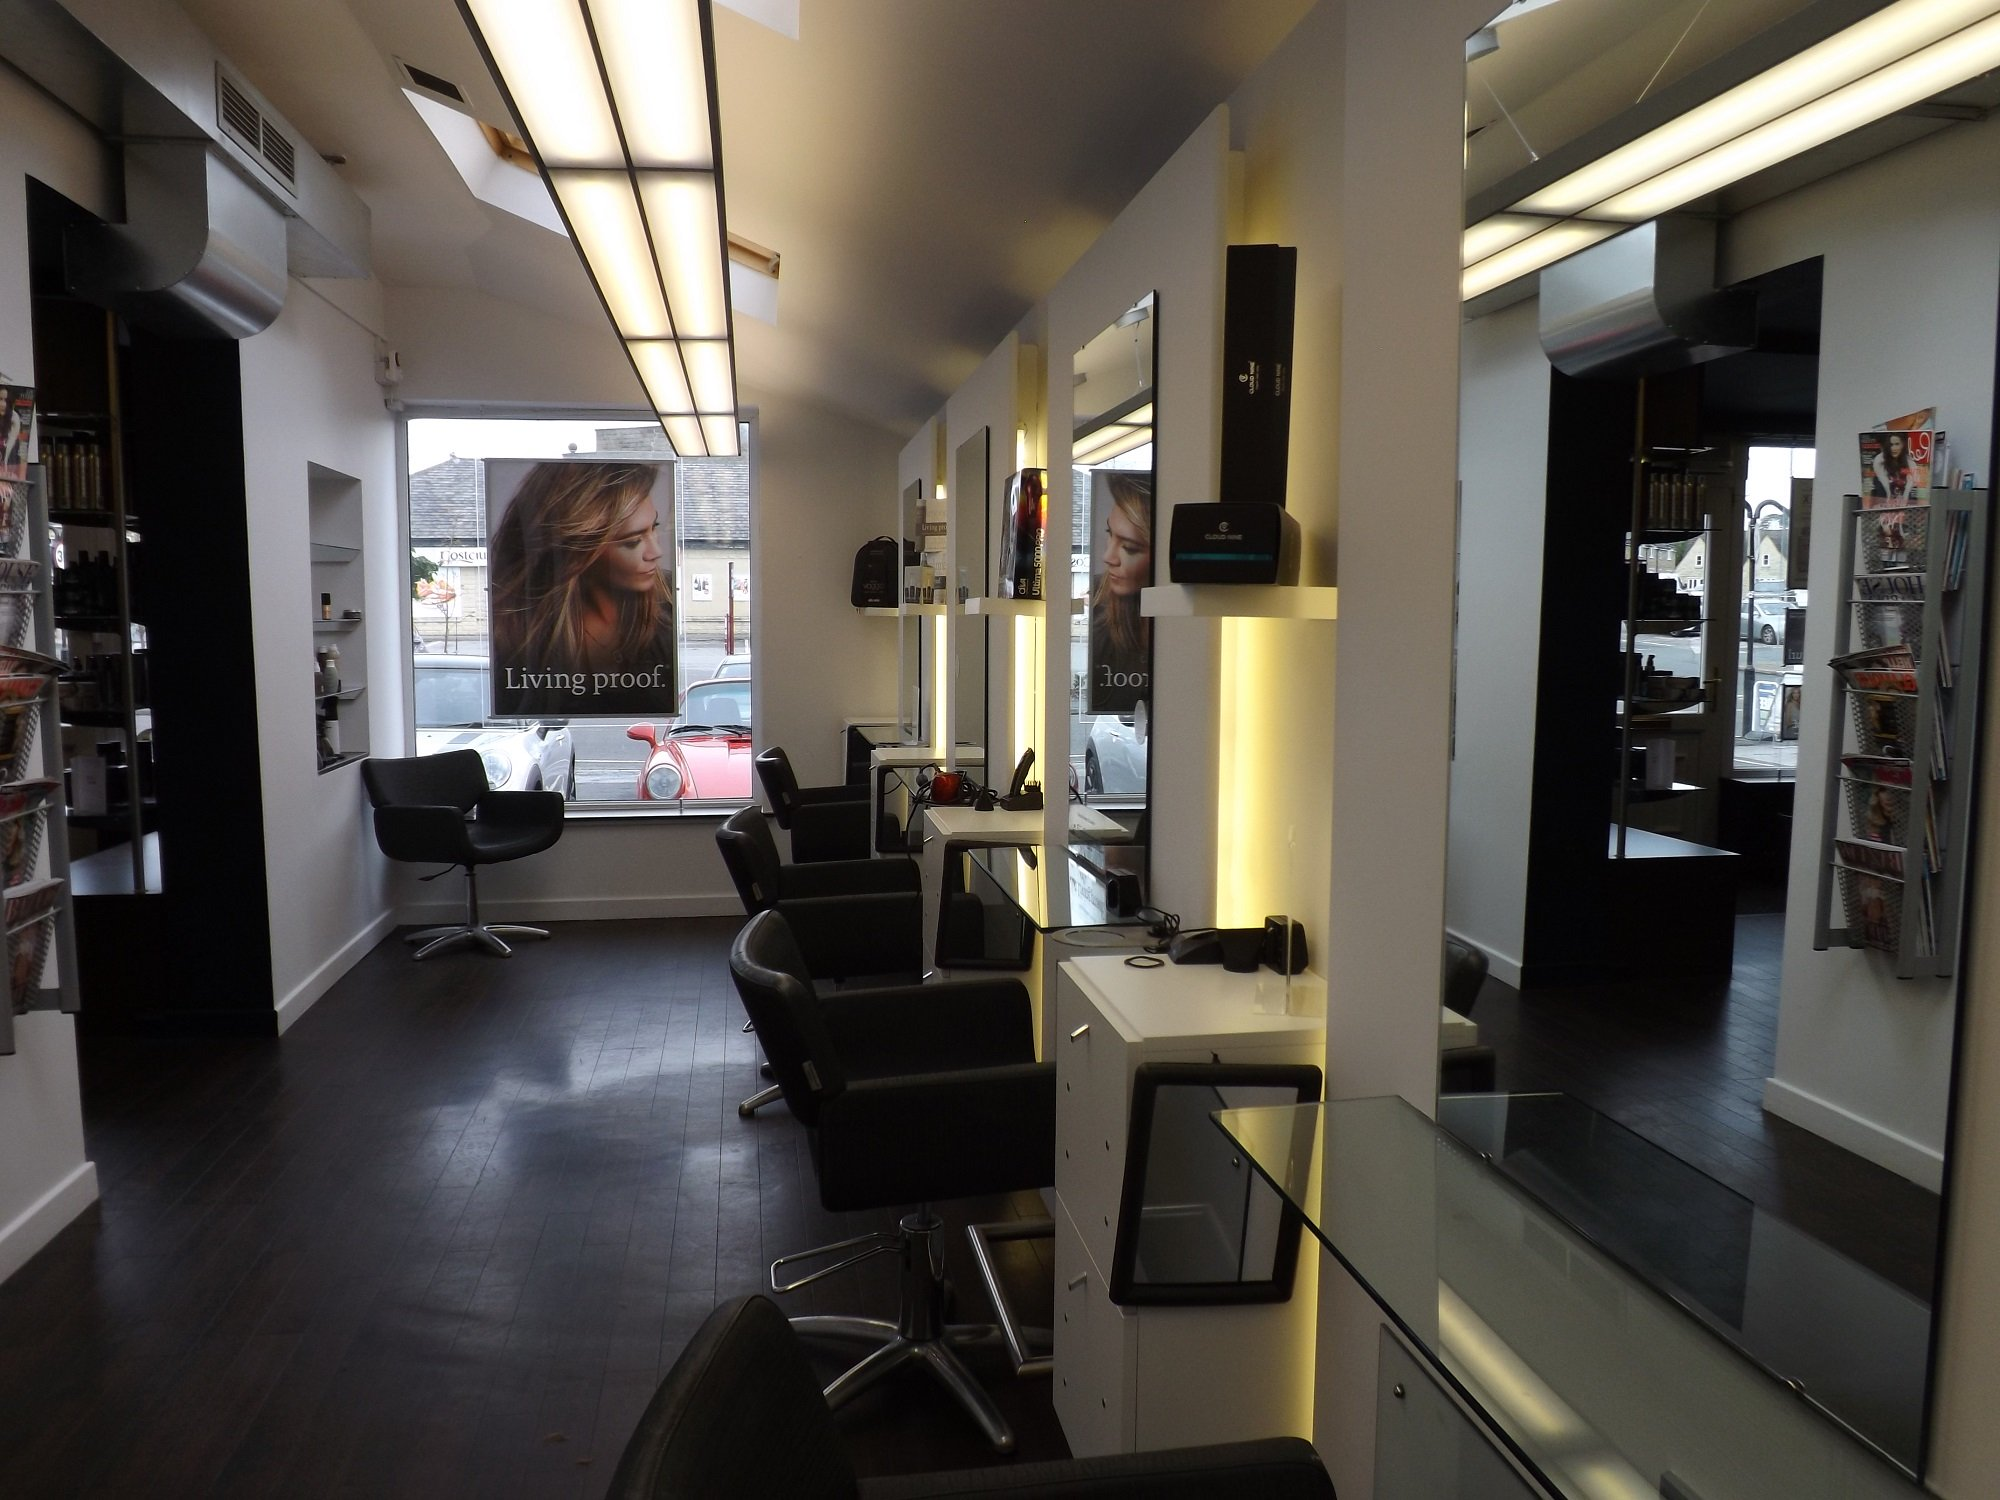 inside bhp hair salon in guiseley, leeds